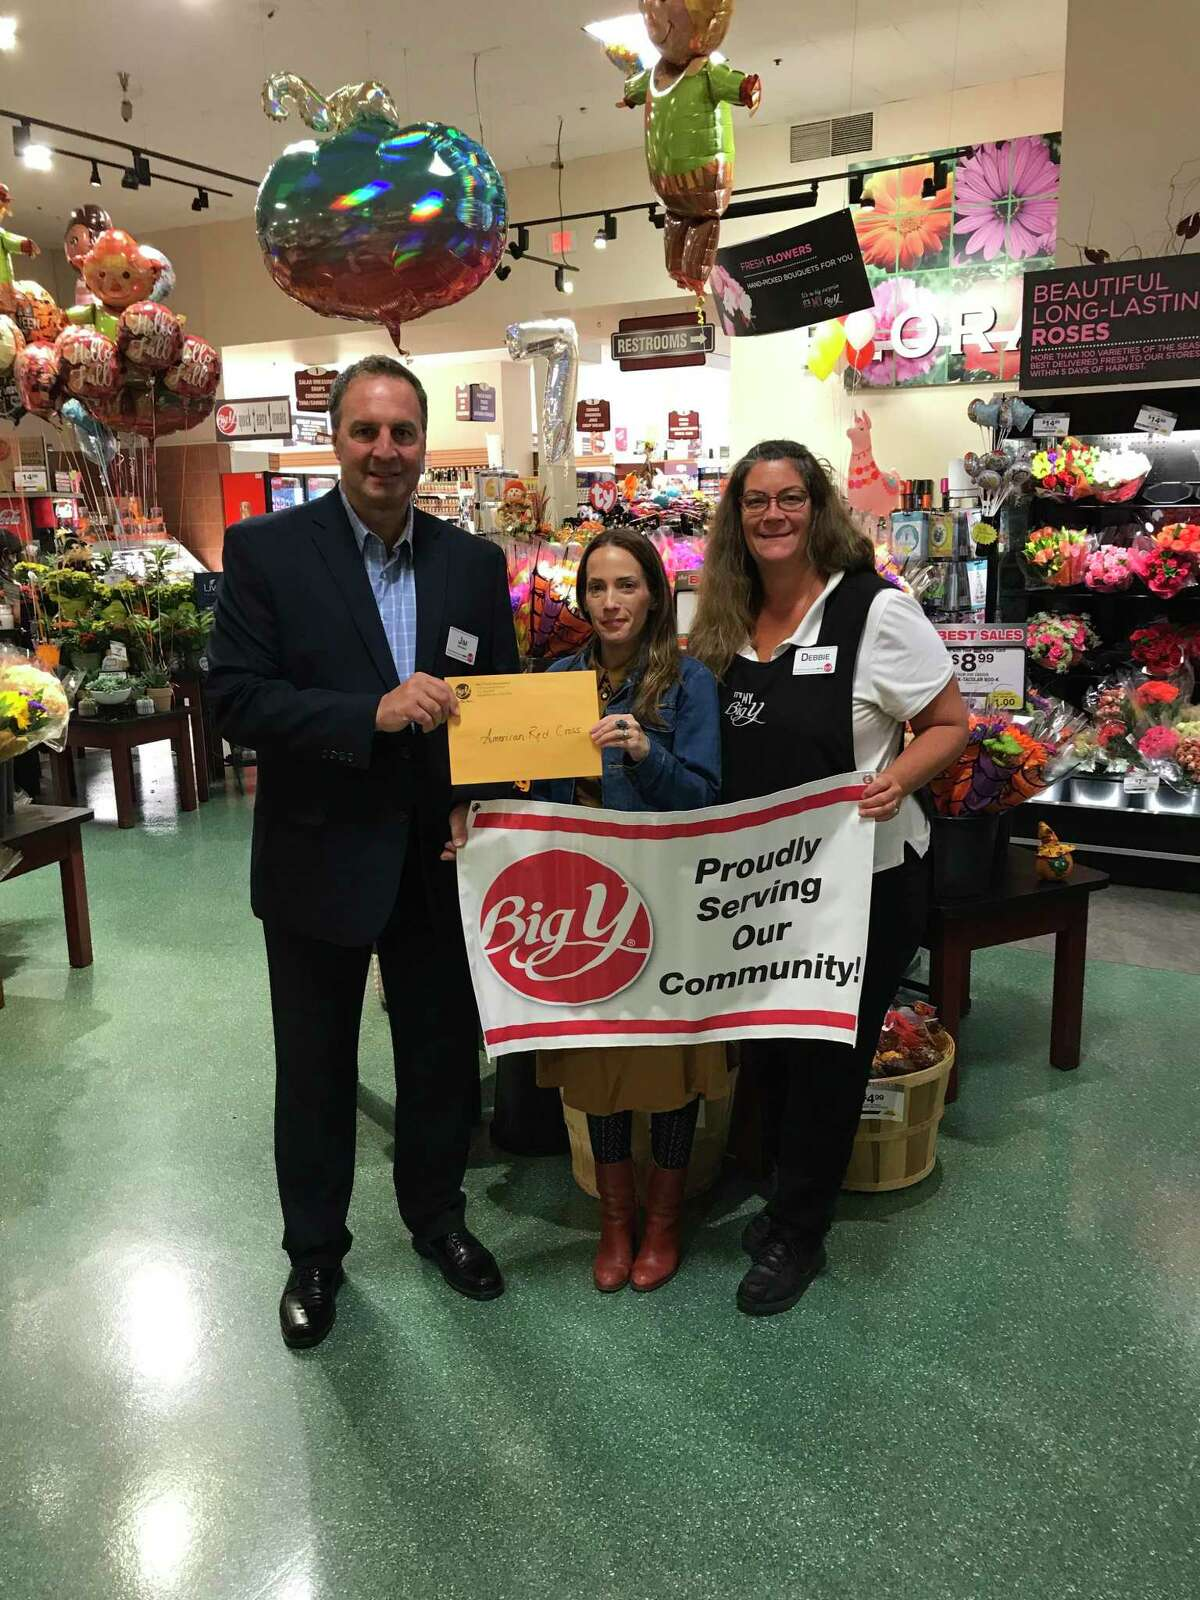 Big Y World Class Markets collected donations from customers and employees from Sept. 11 - 22 for American Red Cross Disaster Relief- Hurricane Dorian. A formal check presentation to the Connecticut American Red Cross was held on Oct. 25 at the West Hartford Big Y World Class Market. Jim Martin, store director of Big Y Foods presented the contribution to Kierstin Pupkowski, Regional Philanthropy Officer, Connecticut and Rhode Island Region.